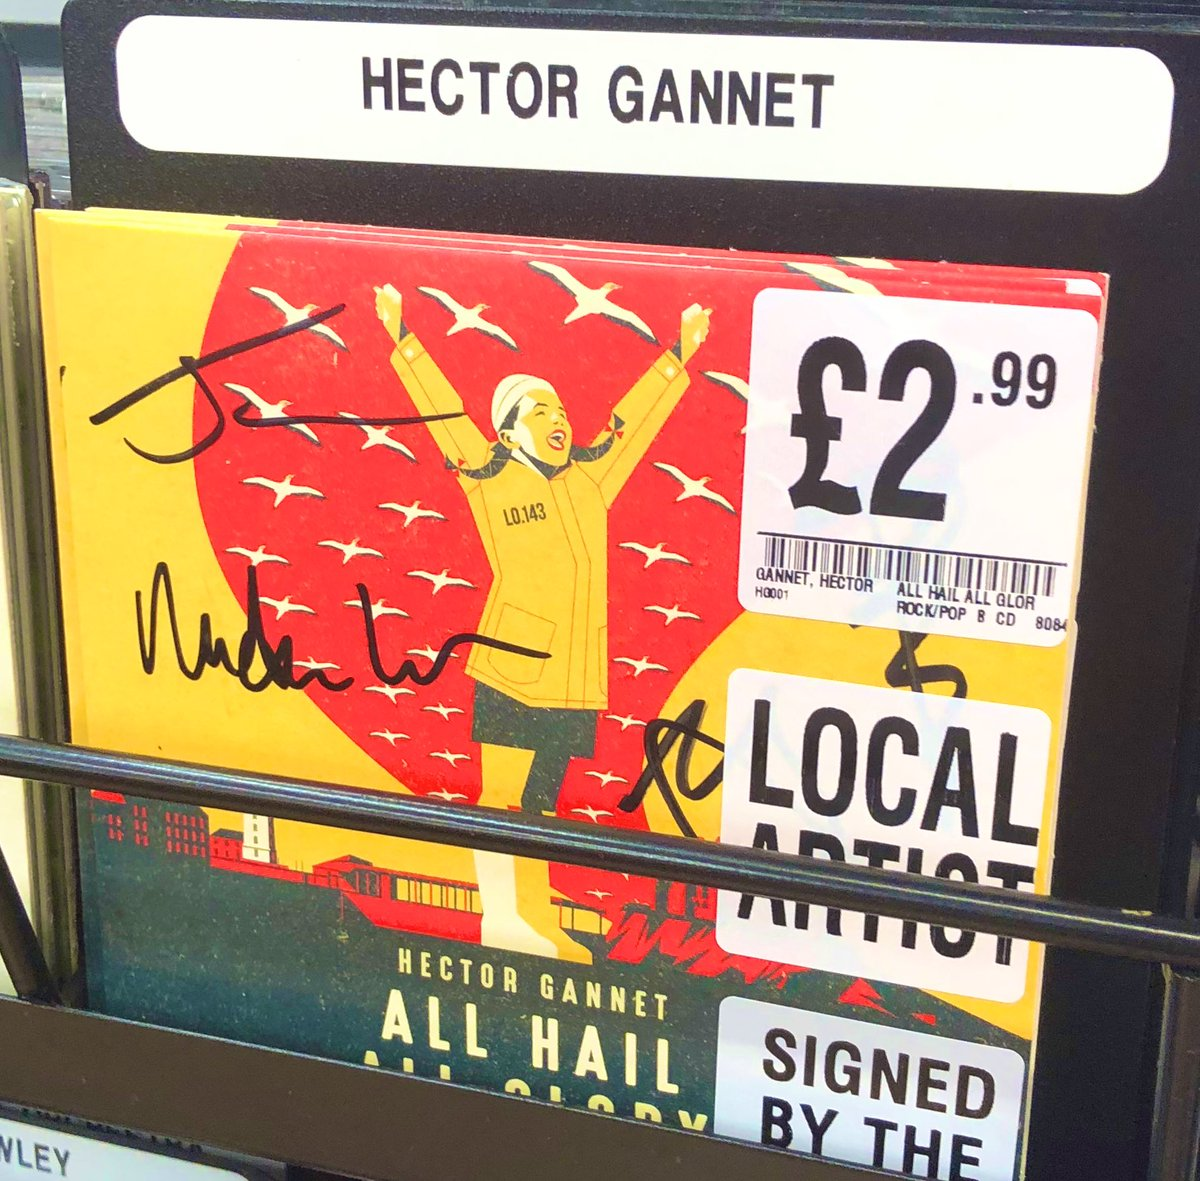 🛶 FRESH STOCK of the #limited #signed & #numbered @HectorGannet single #AllHailAllGlory came in today. The lads are supporting our own #LocalHero @samfendermusic soon & really impressed our staff & customers when they played live in-store! #HMVLovesLocal 🏜 Get your copy now ⚓️